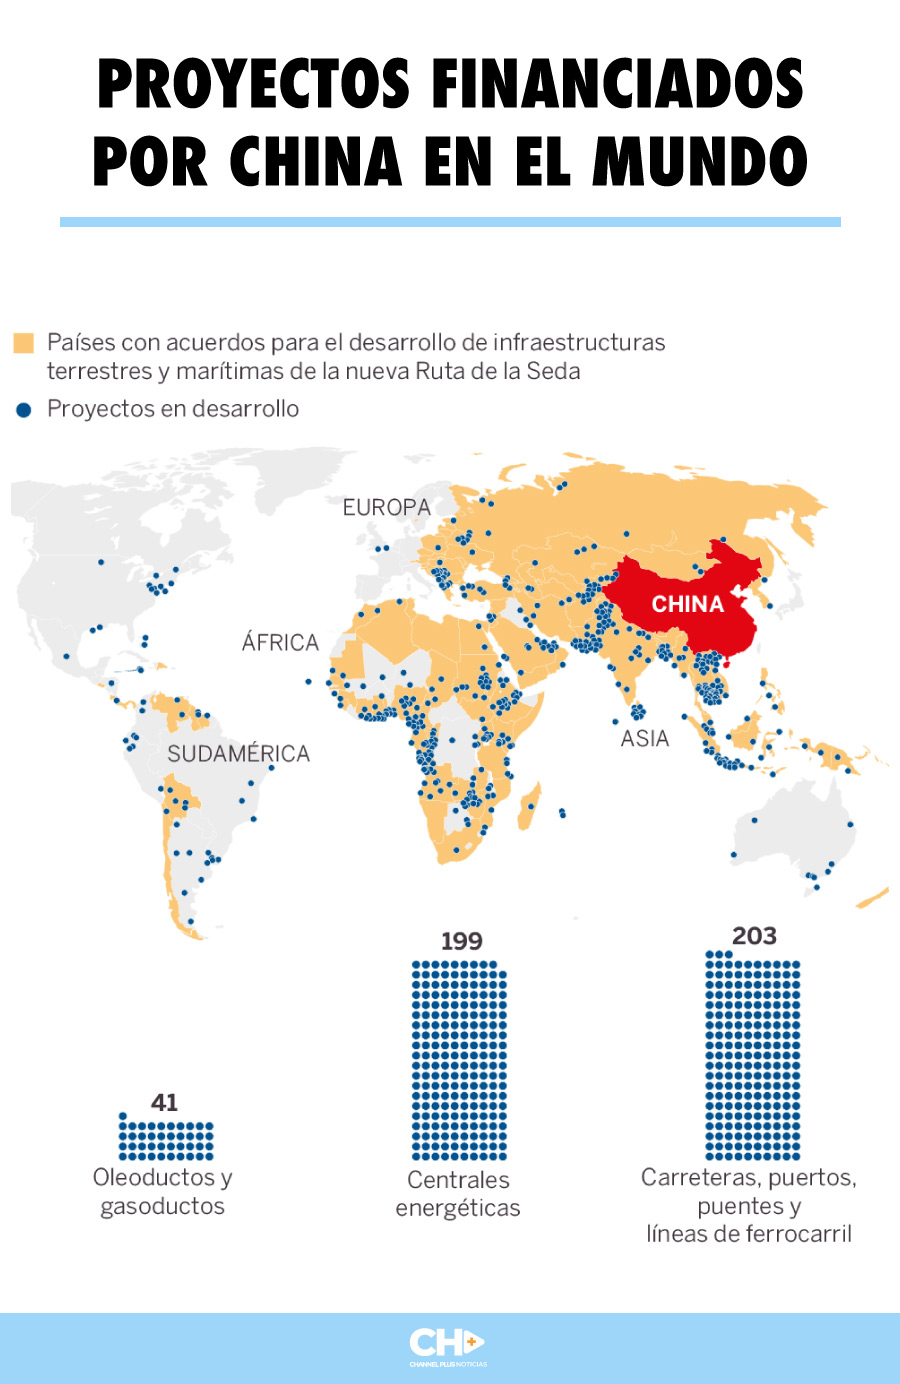 Proyectos financiados por China en el mundo